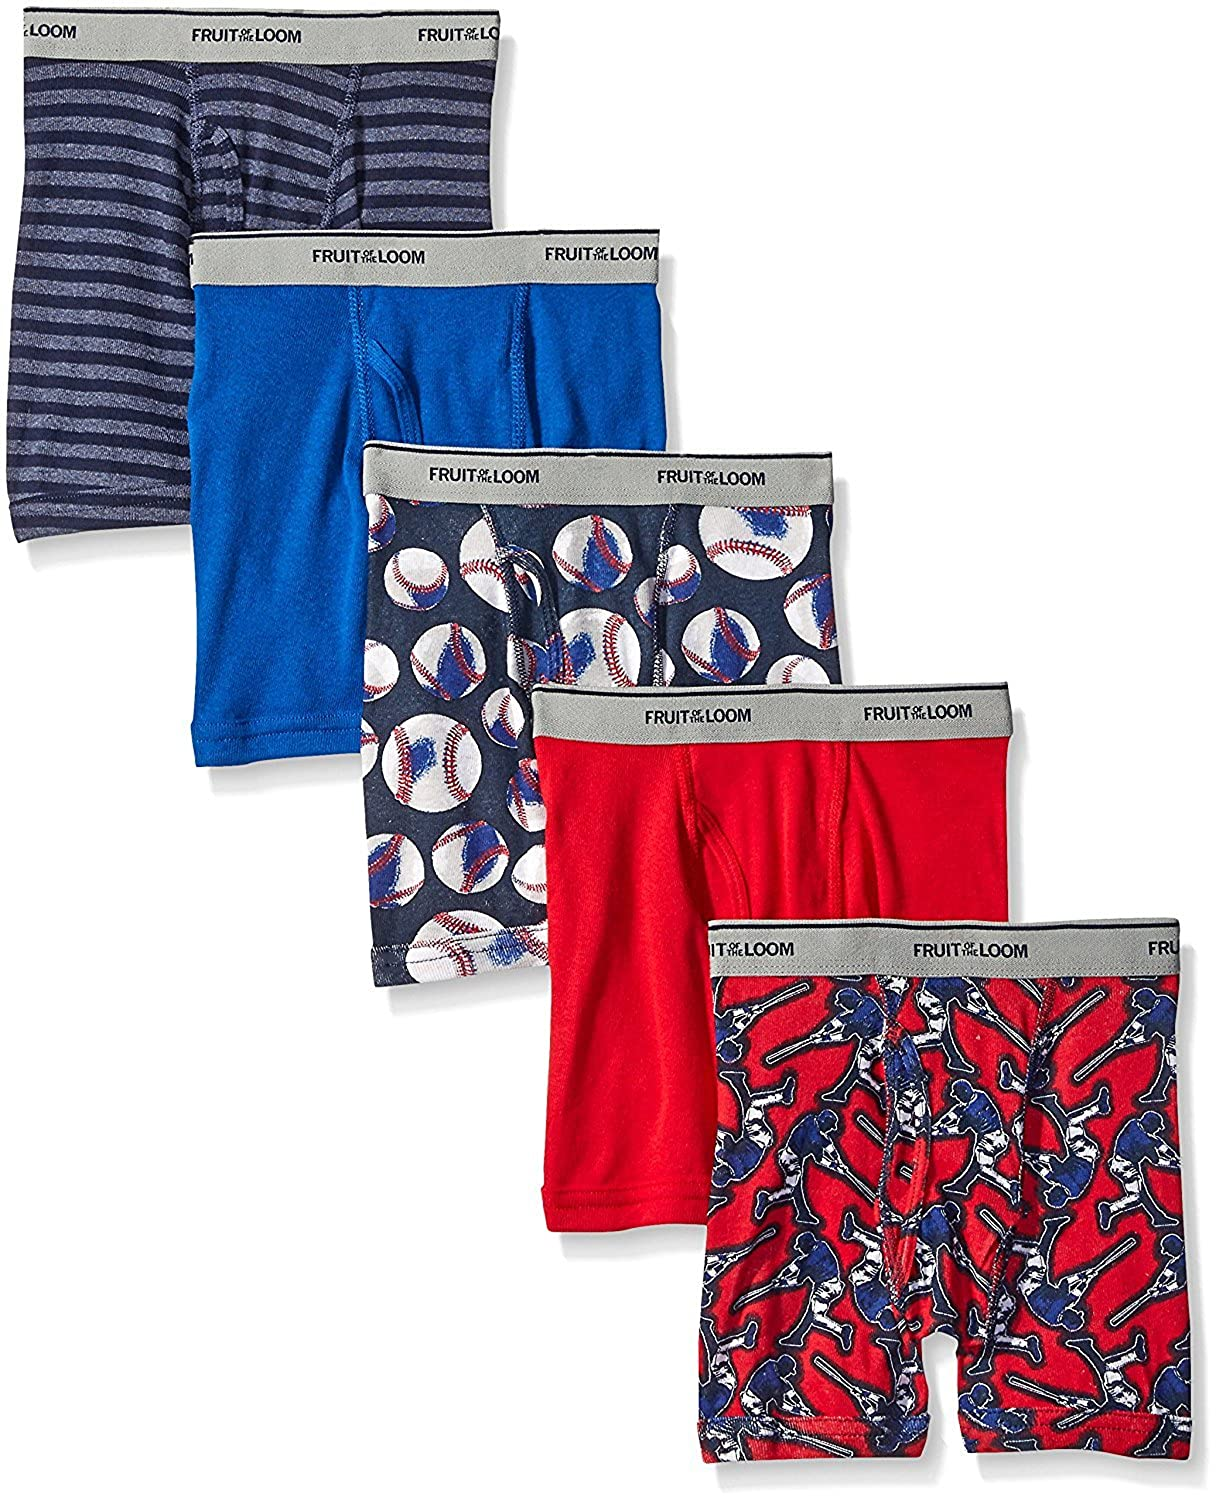 28-33 lbs // 21 Waist Fruit of the Loom Boys Boxer Brief Multi, 2T//3T Exposed and Covered Waistband